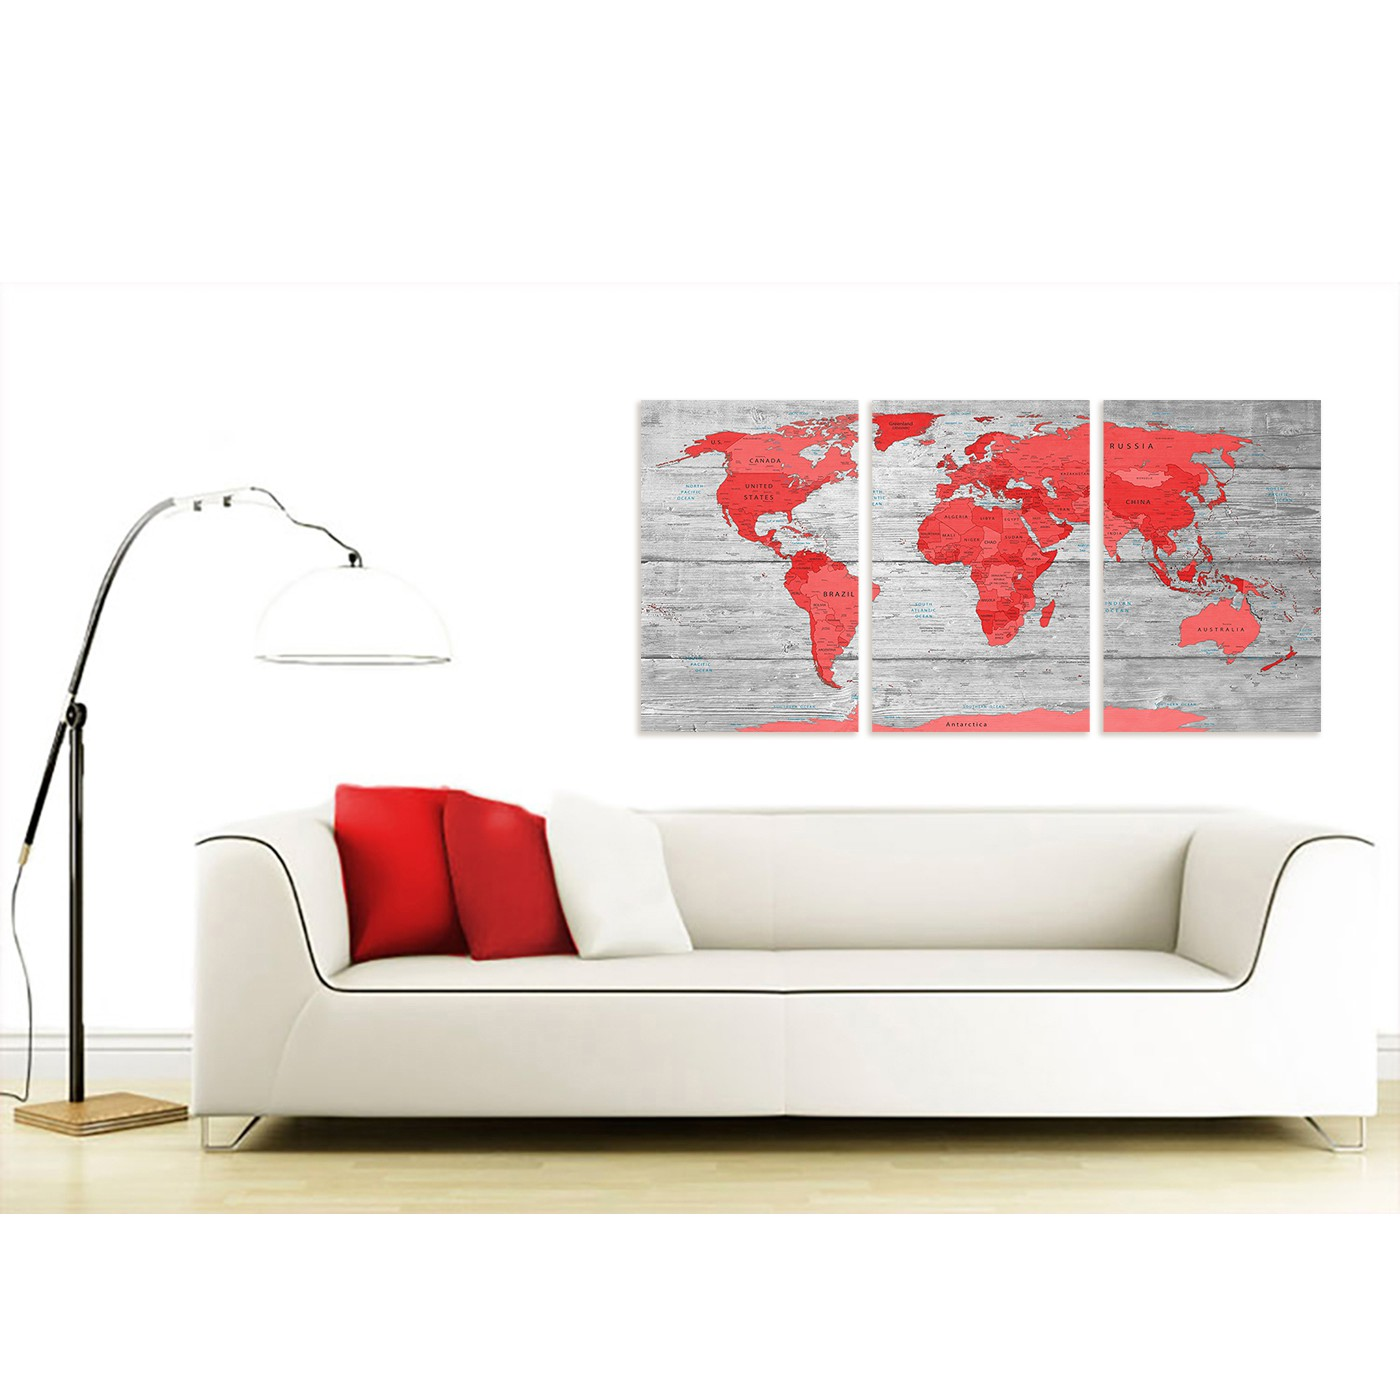 Large red grey map of the world atlas canvas wall art print split 3 display gallery item 3 contemporary large red grey map of the world atlas canvas wall art print multi 3 set display gallery item 4 gumiabroncs Images